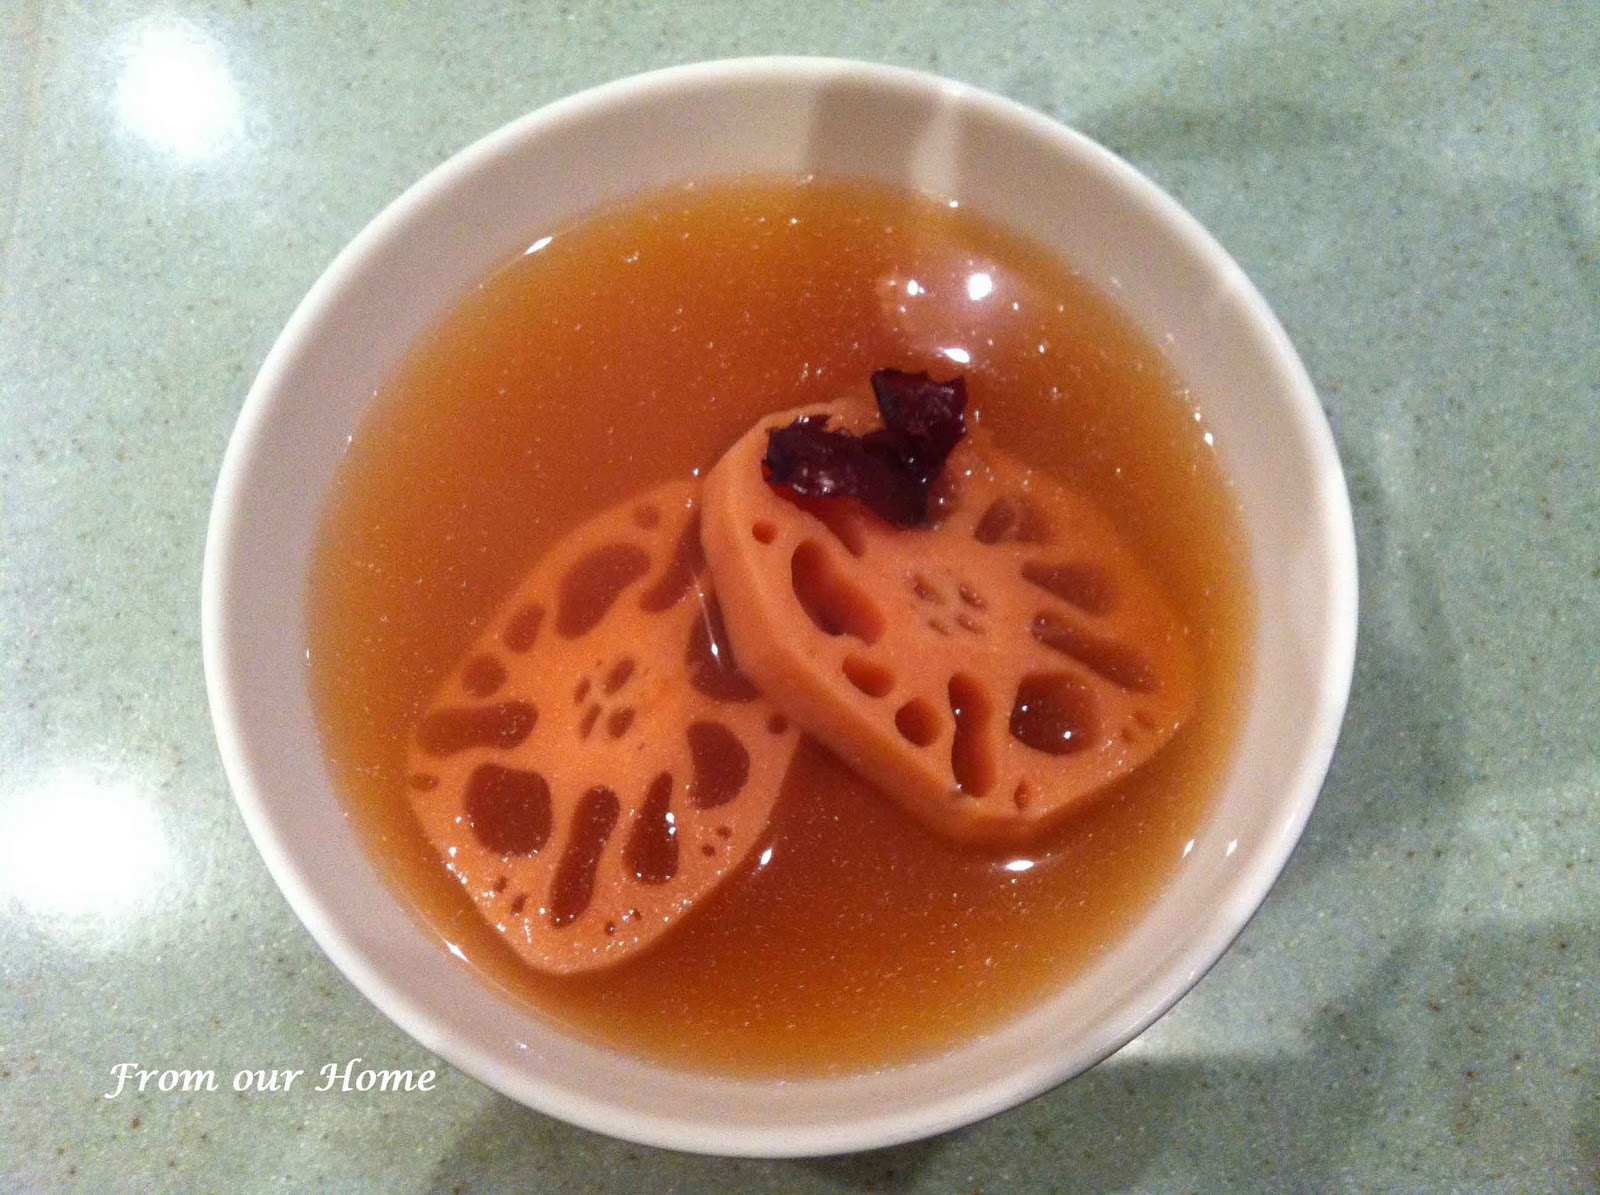 From Our Home: Fresh Lotus Root Soup